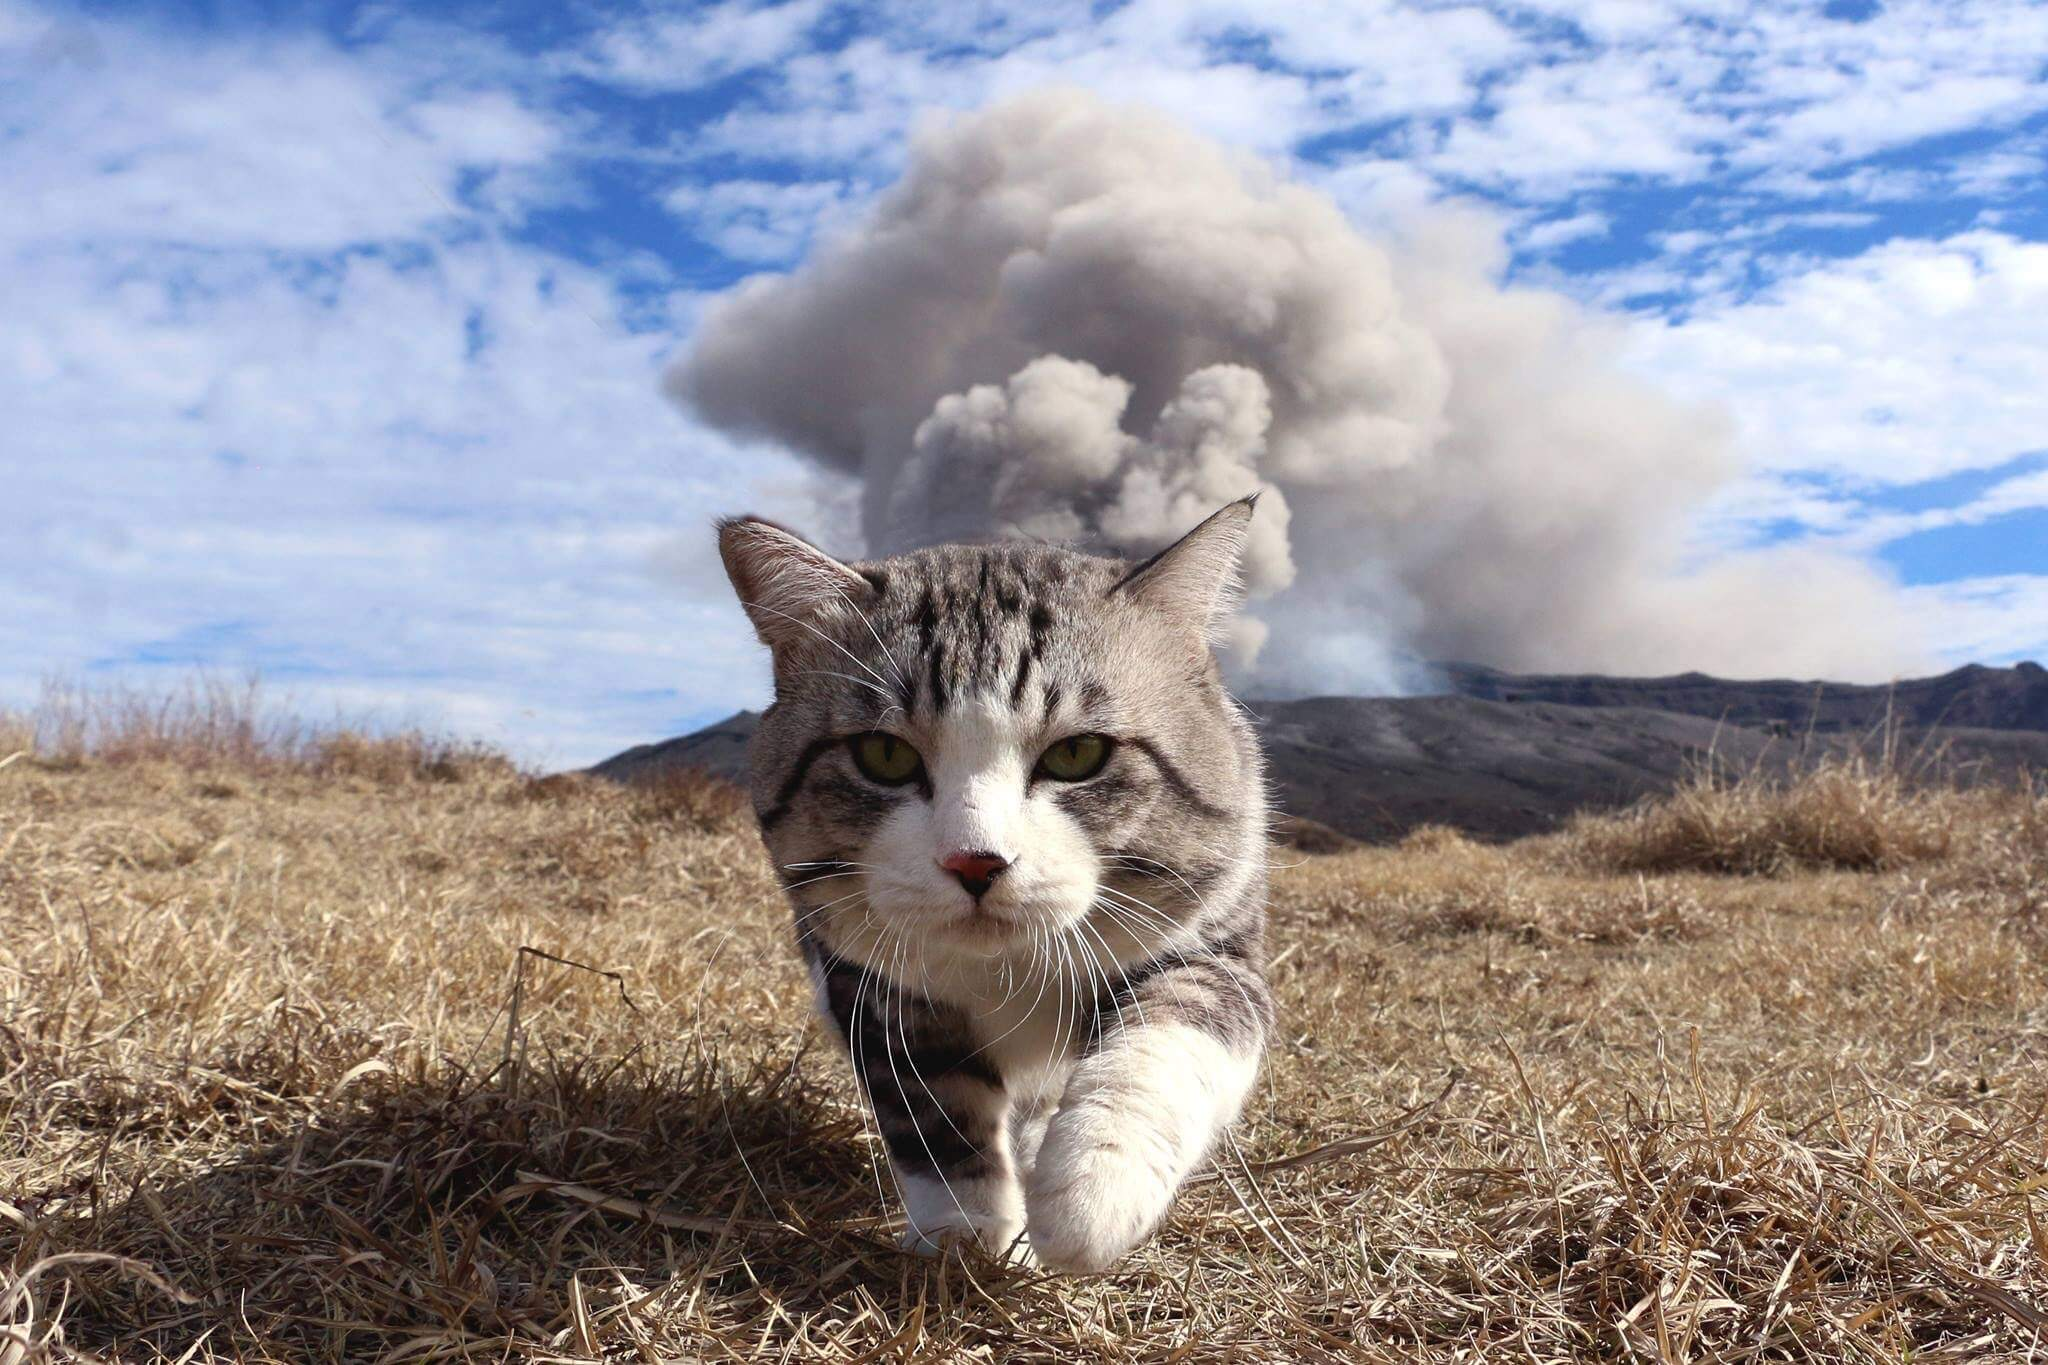 cat walking away from explosion 1 (1)